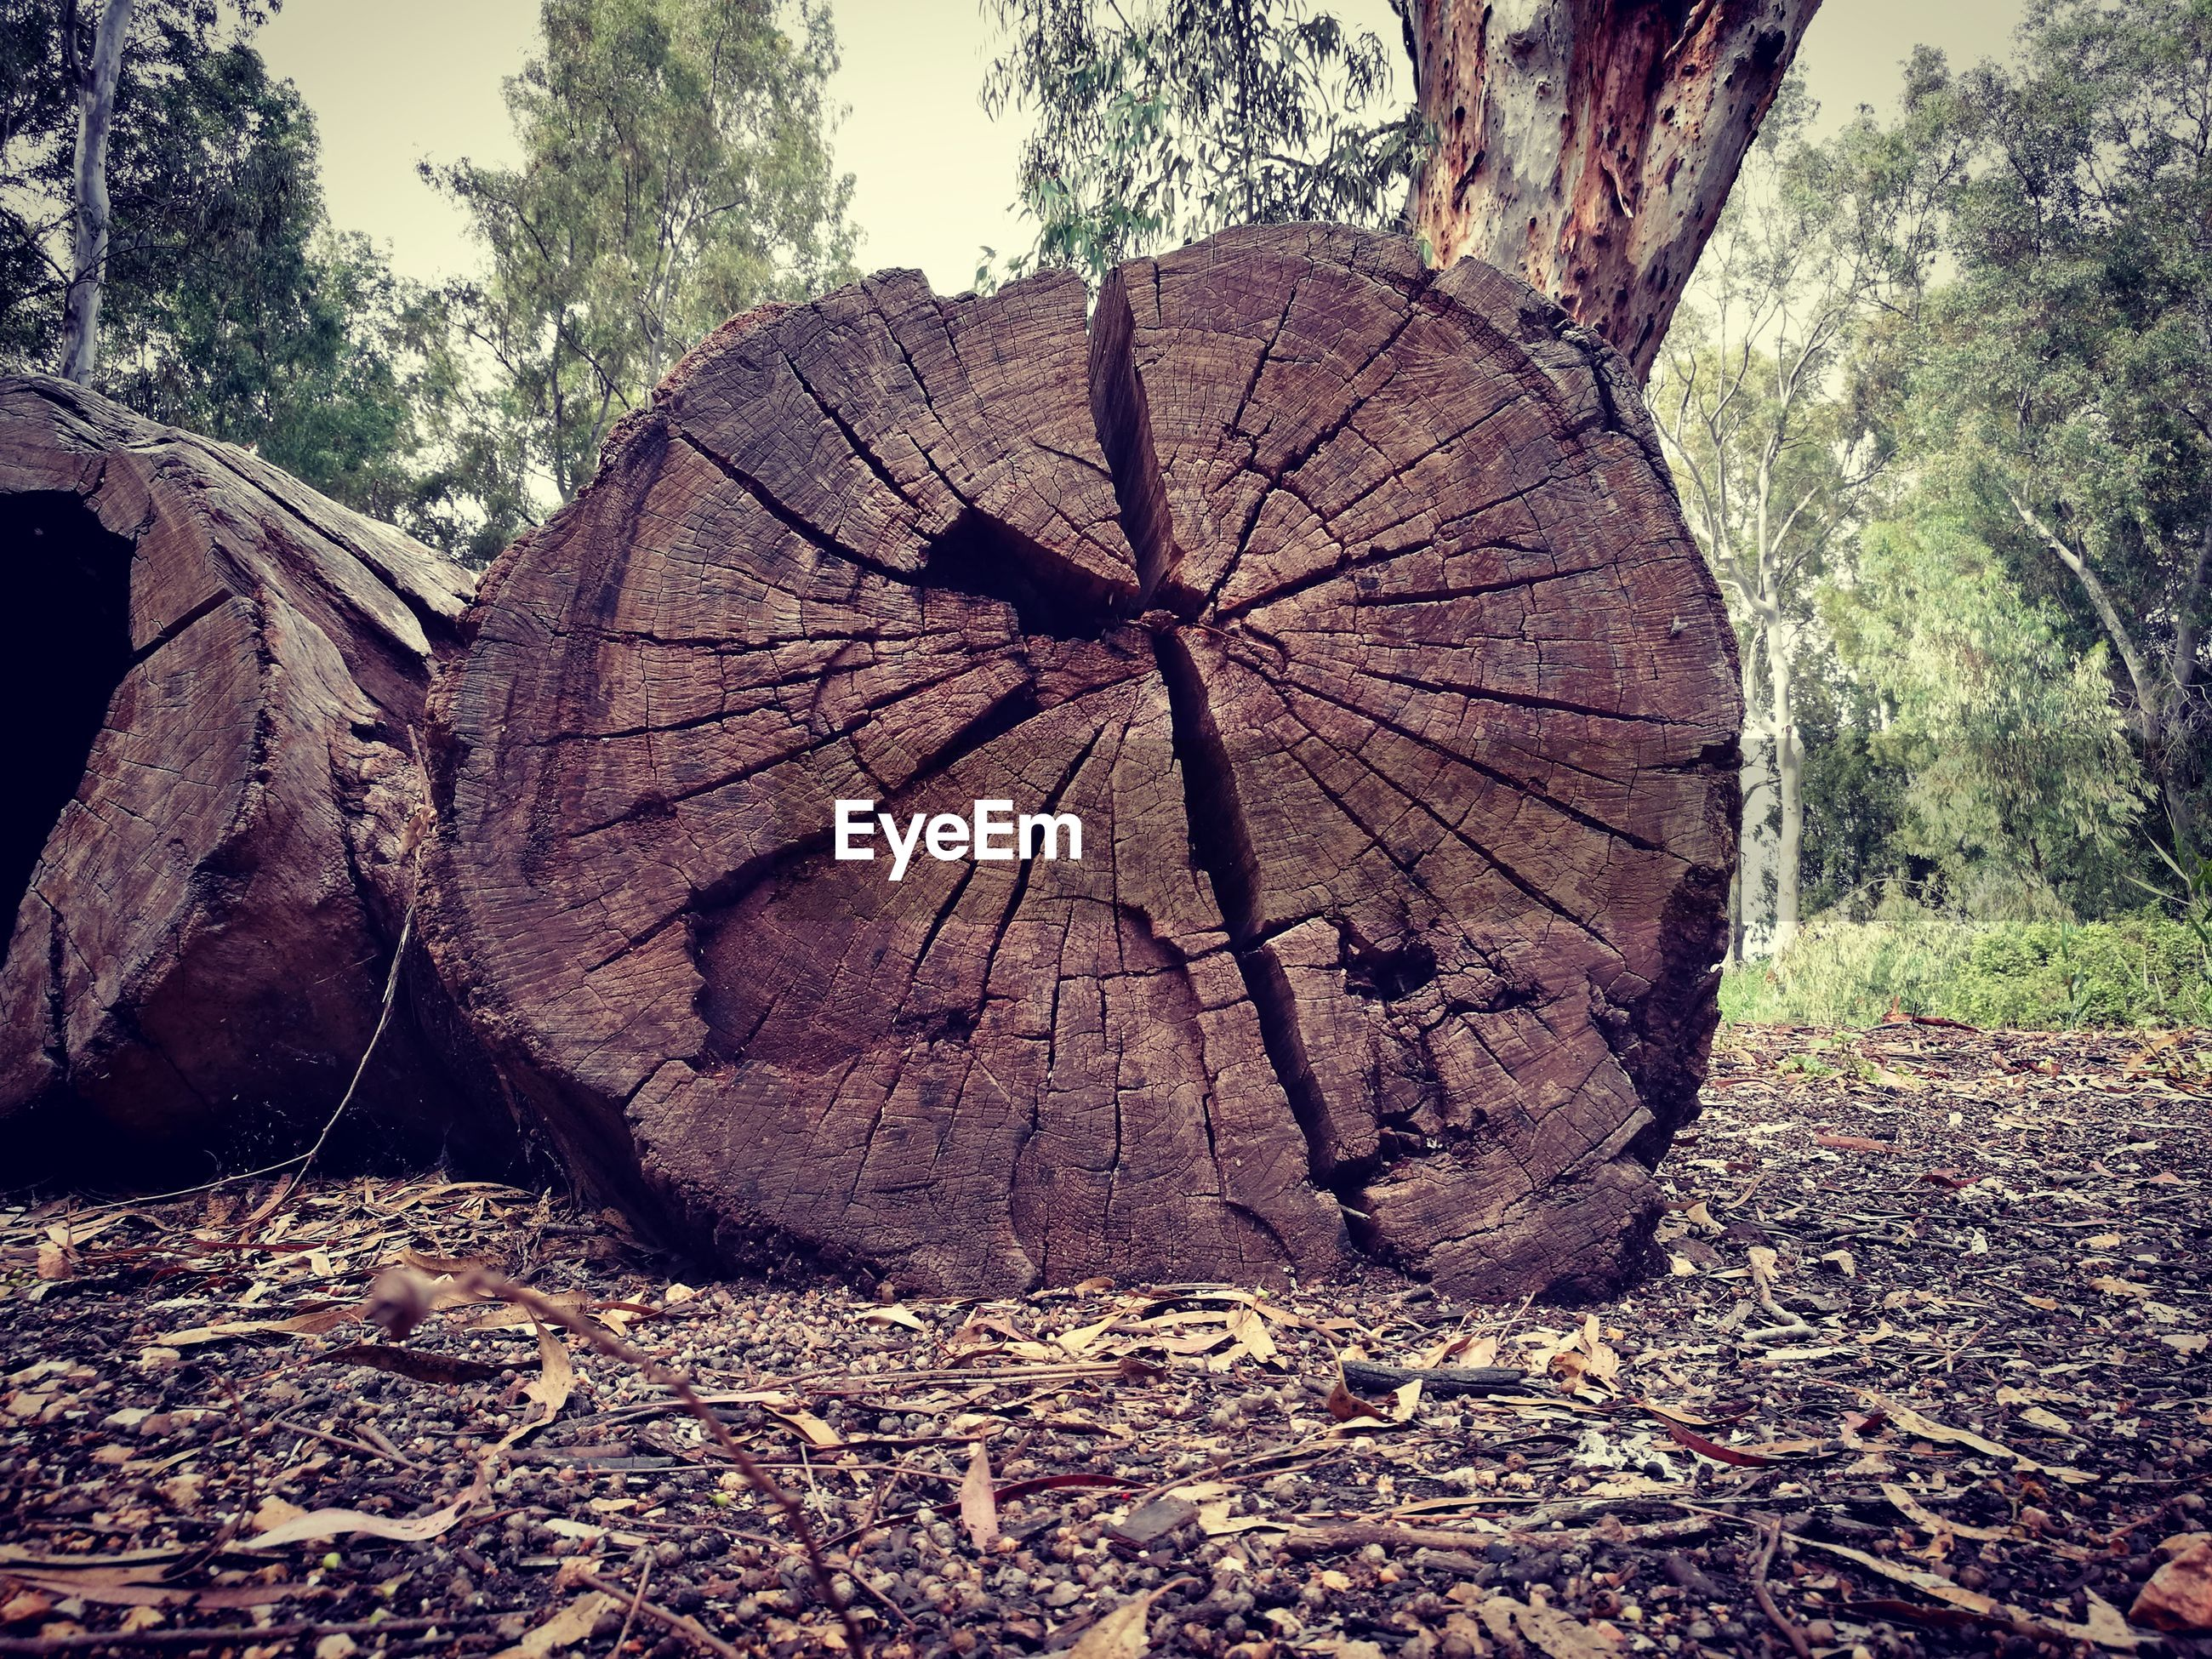 Close-up of tree stump on land in forest